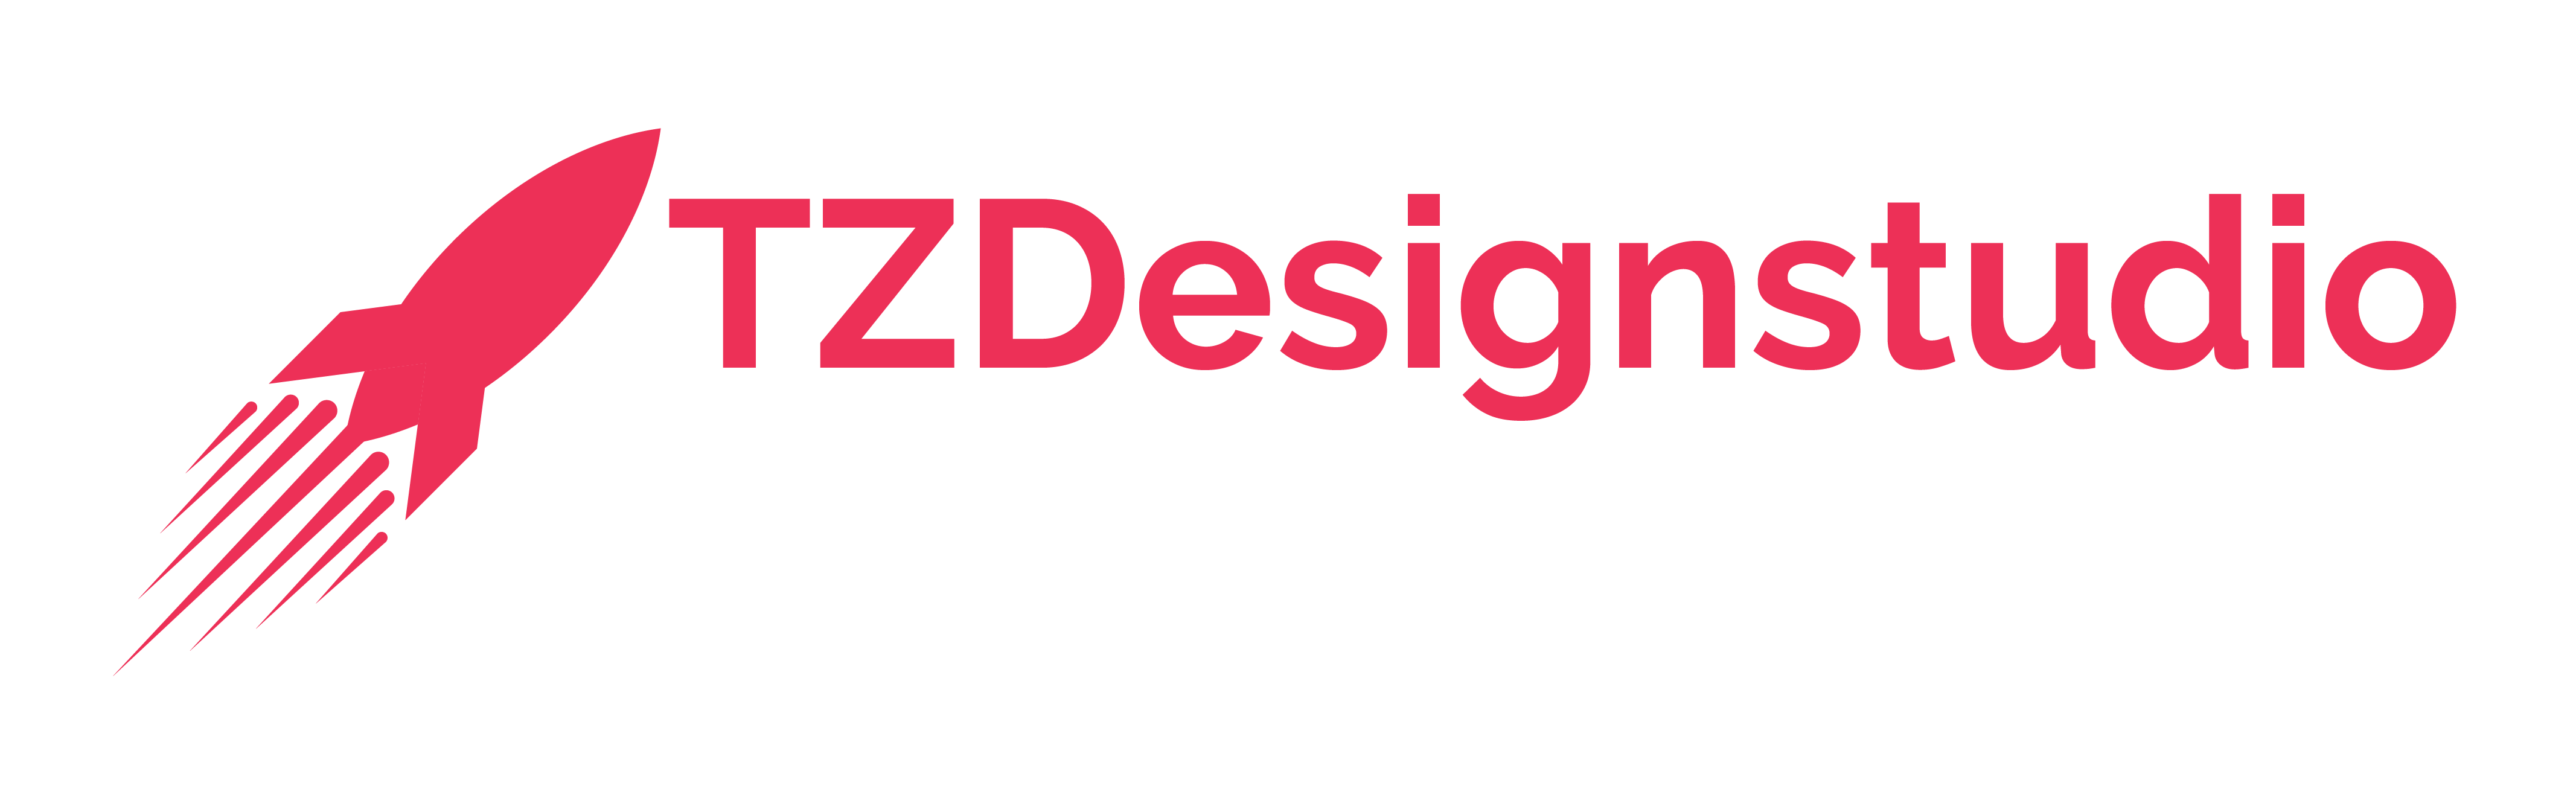 TZDesignstudio Lake Grove, NY Logo